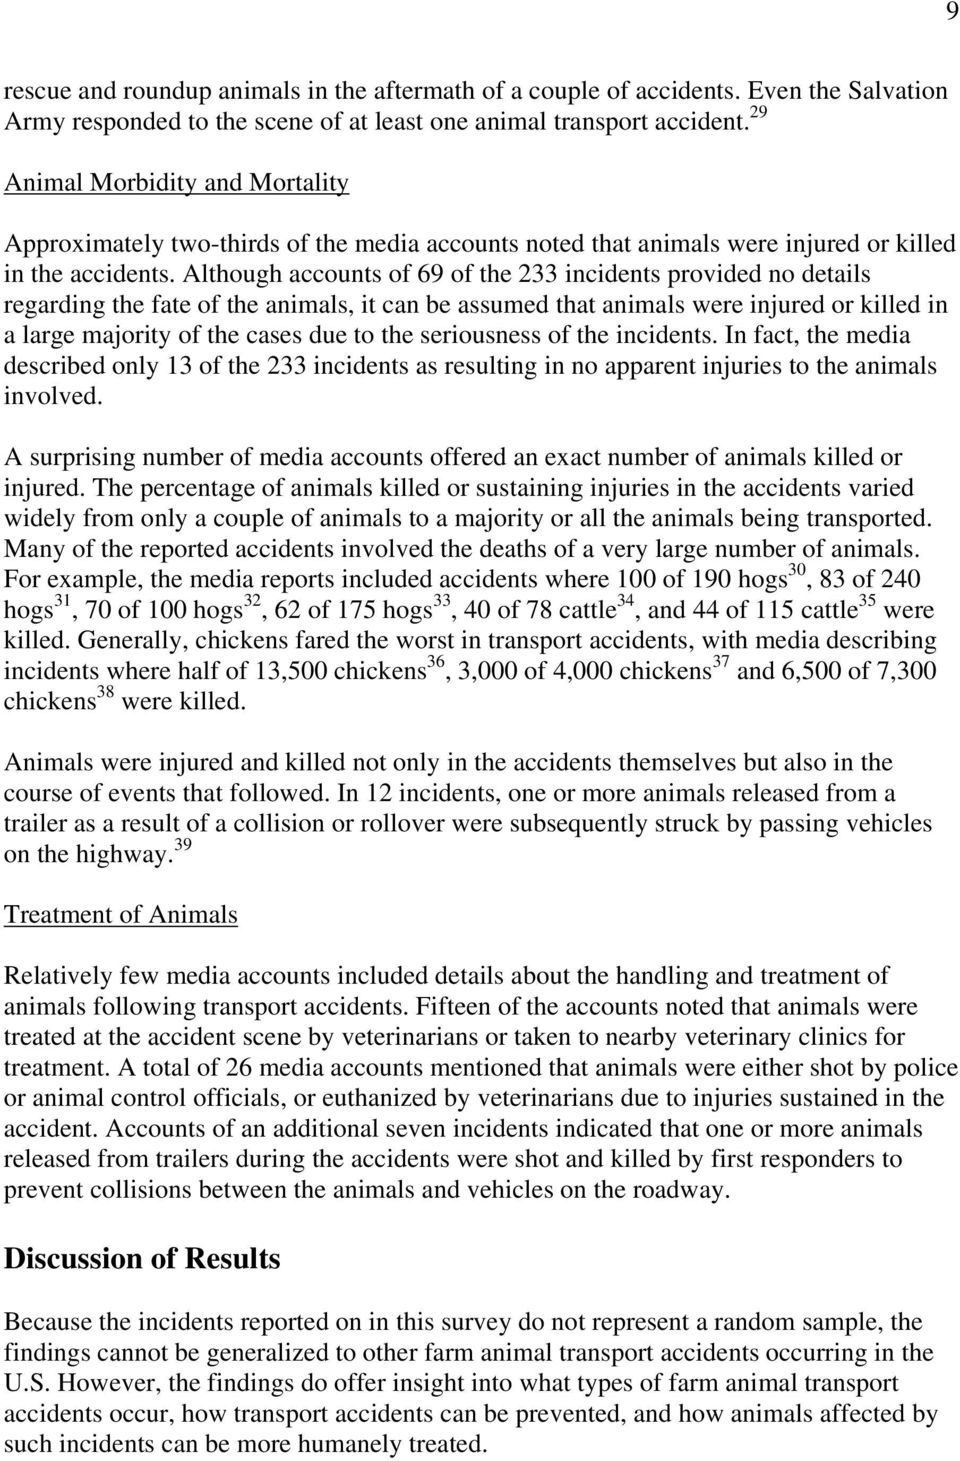 Although accounts of 69 of the 233 incidents provided no details regarding the fate of the animals, it can be assumed that animals were injured or killed in a large majority of the cases due to the